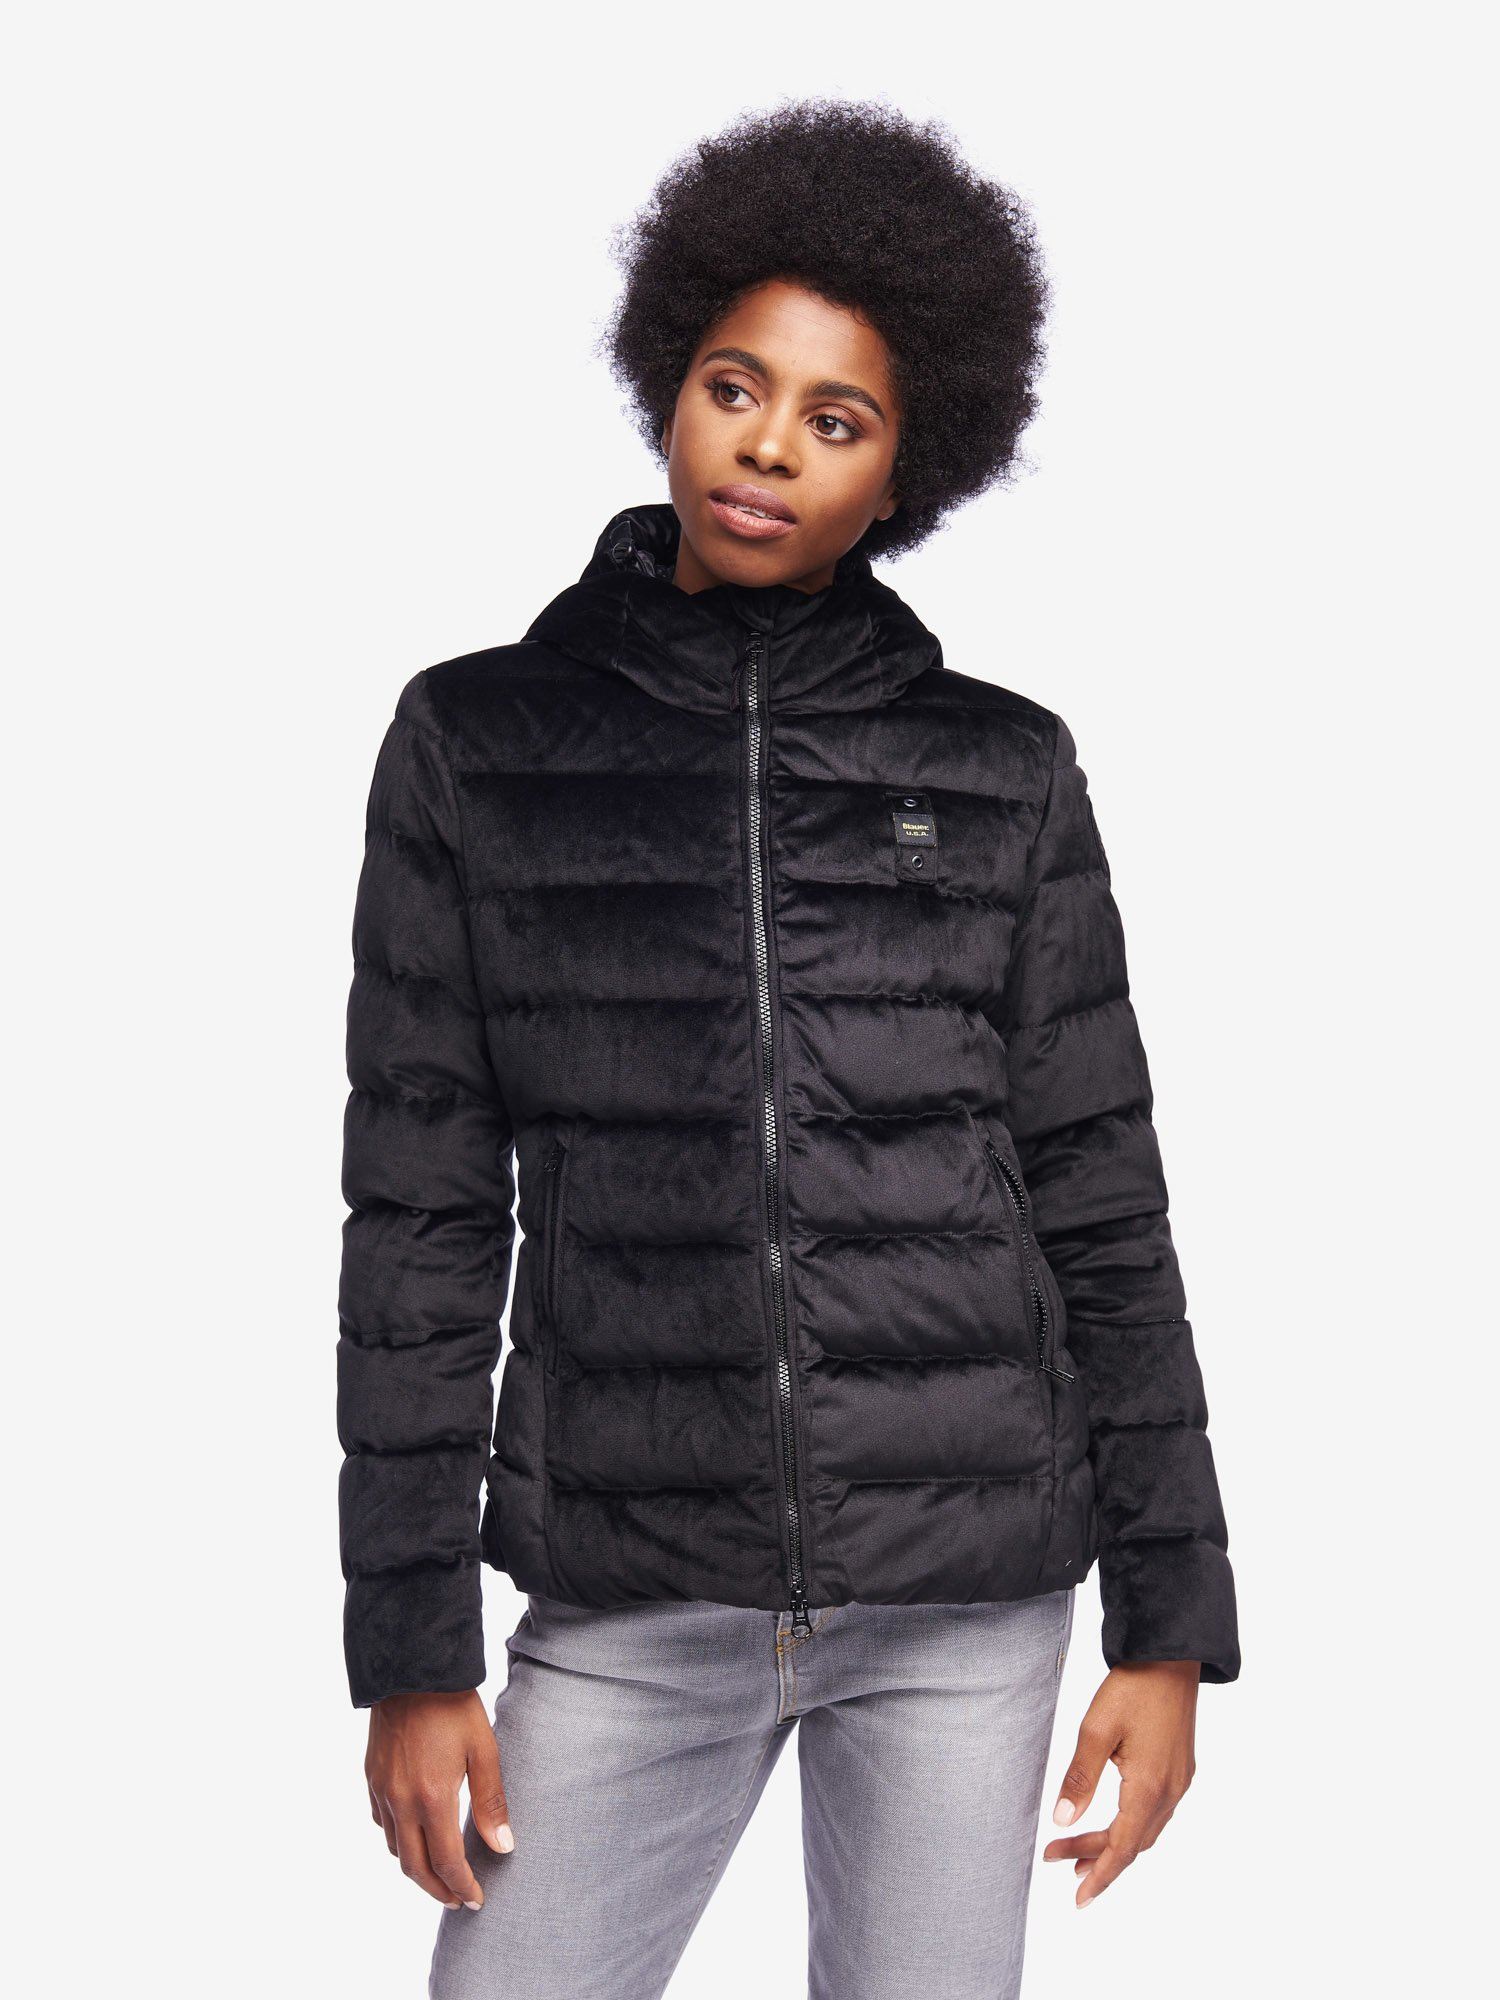 PEARCE VELVETY DOWN JACKET - Blauer